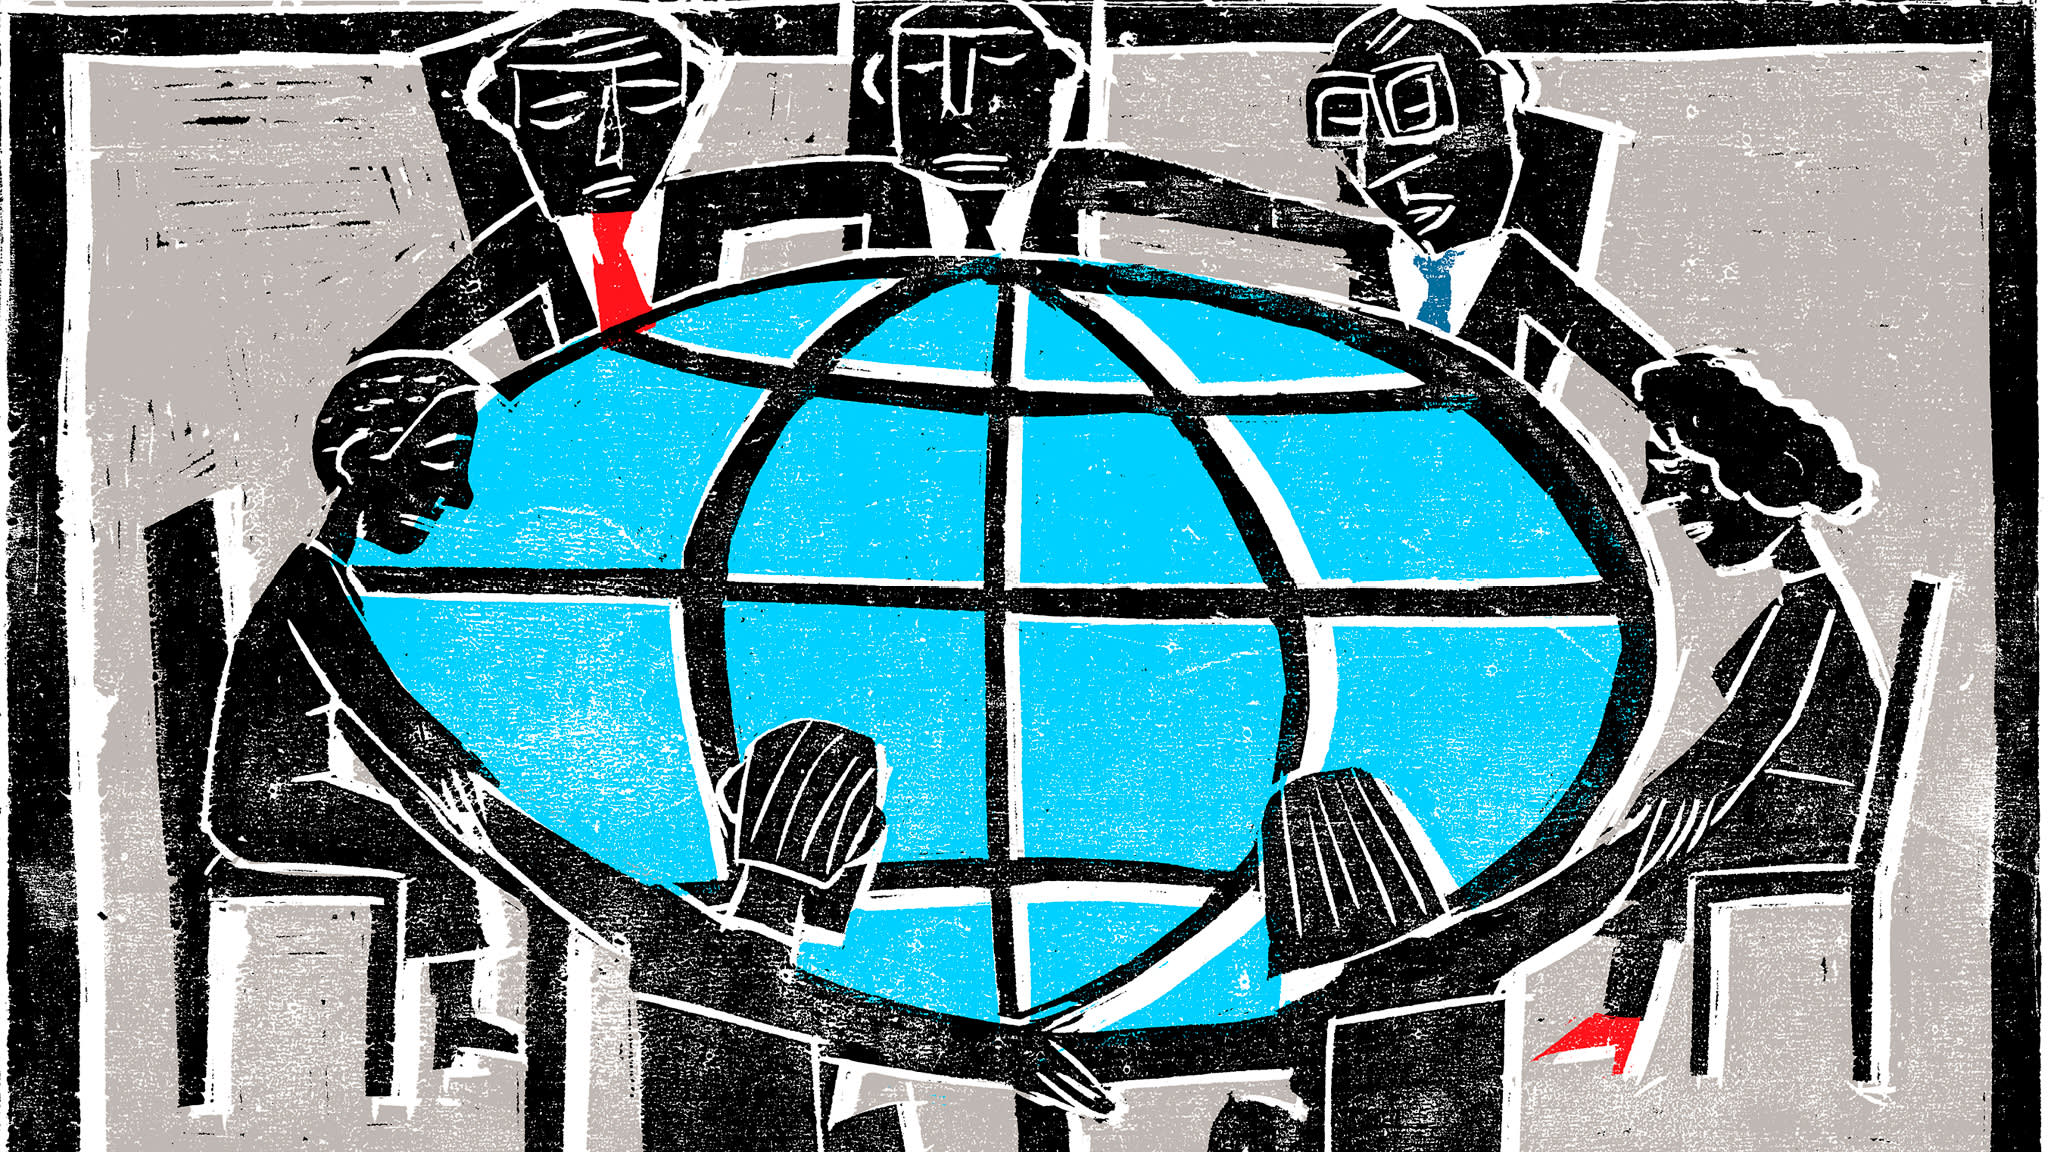 We need a new, more co-operative international order